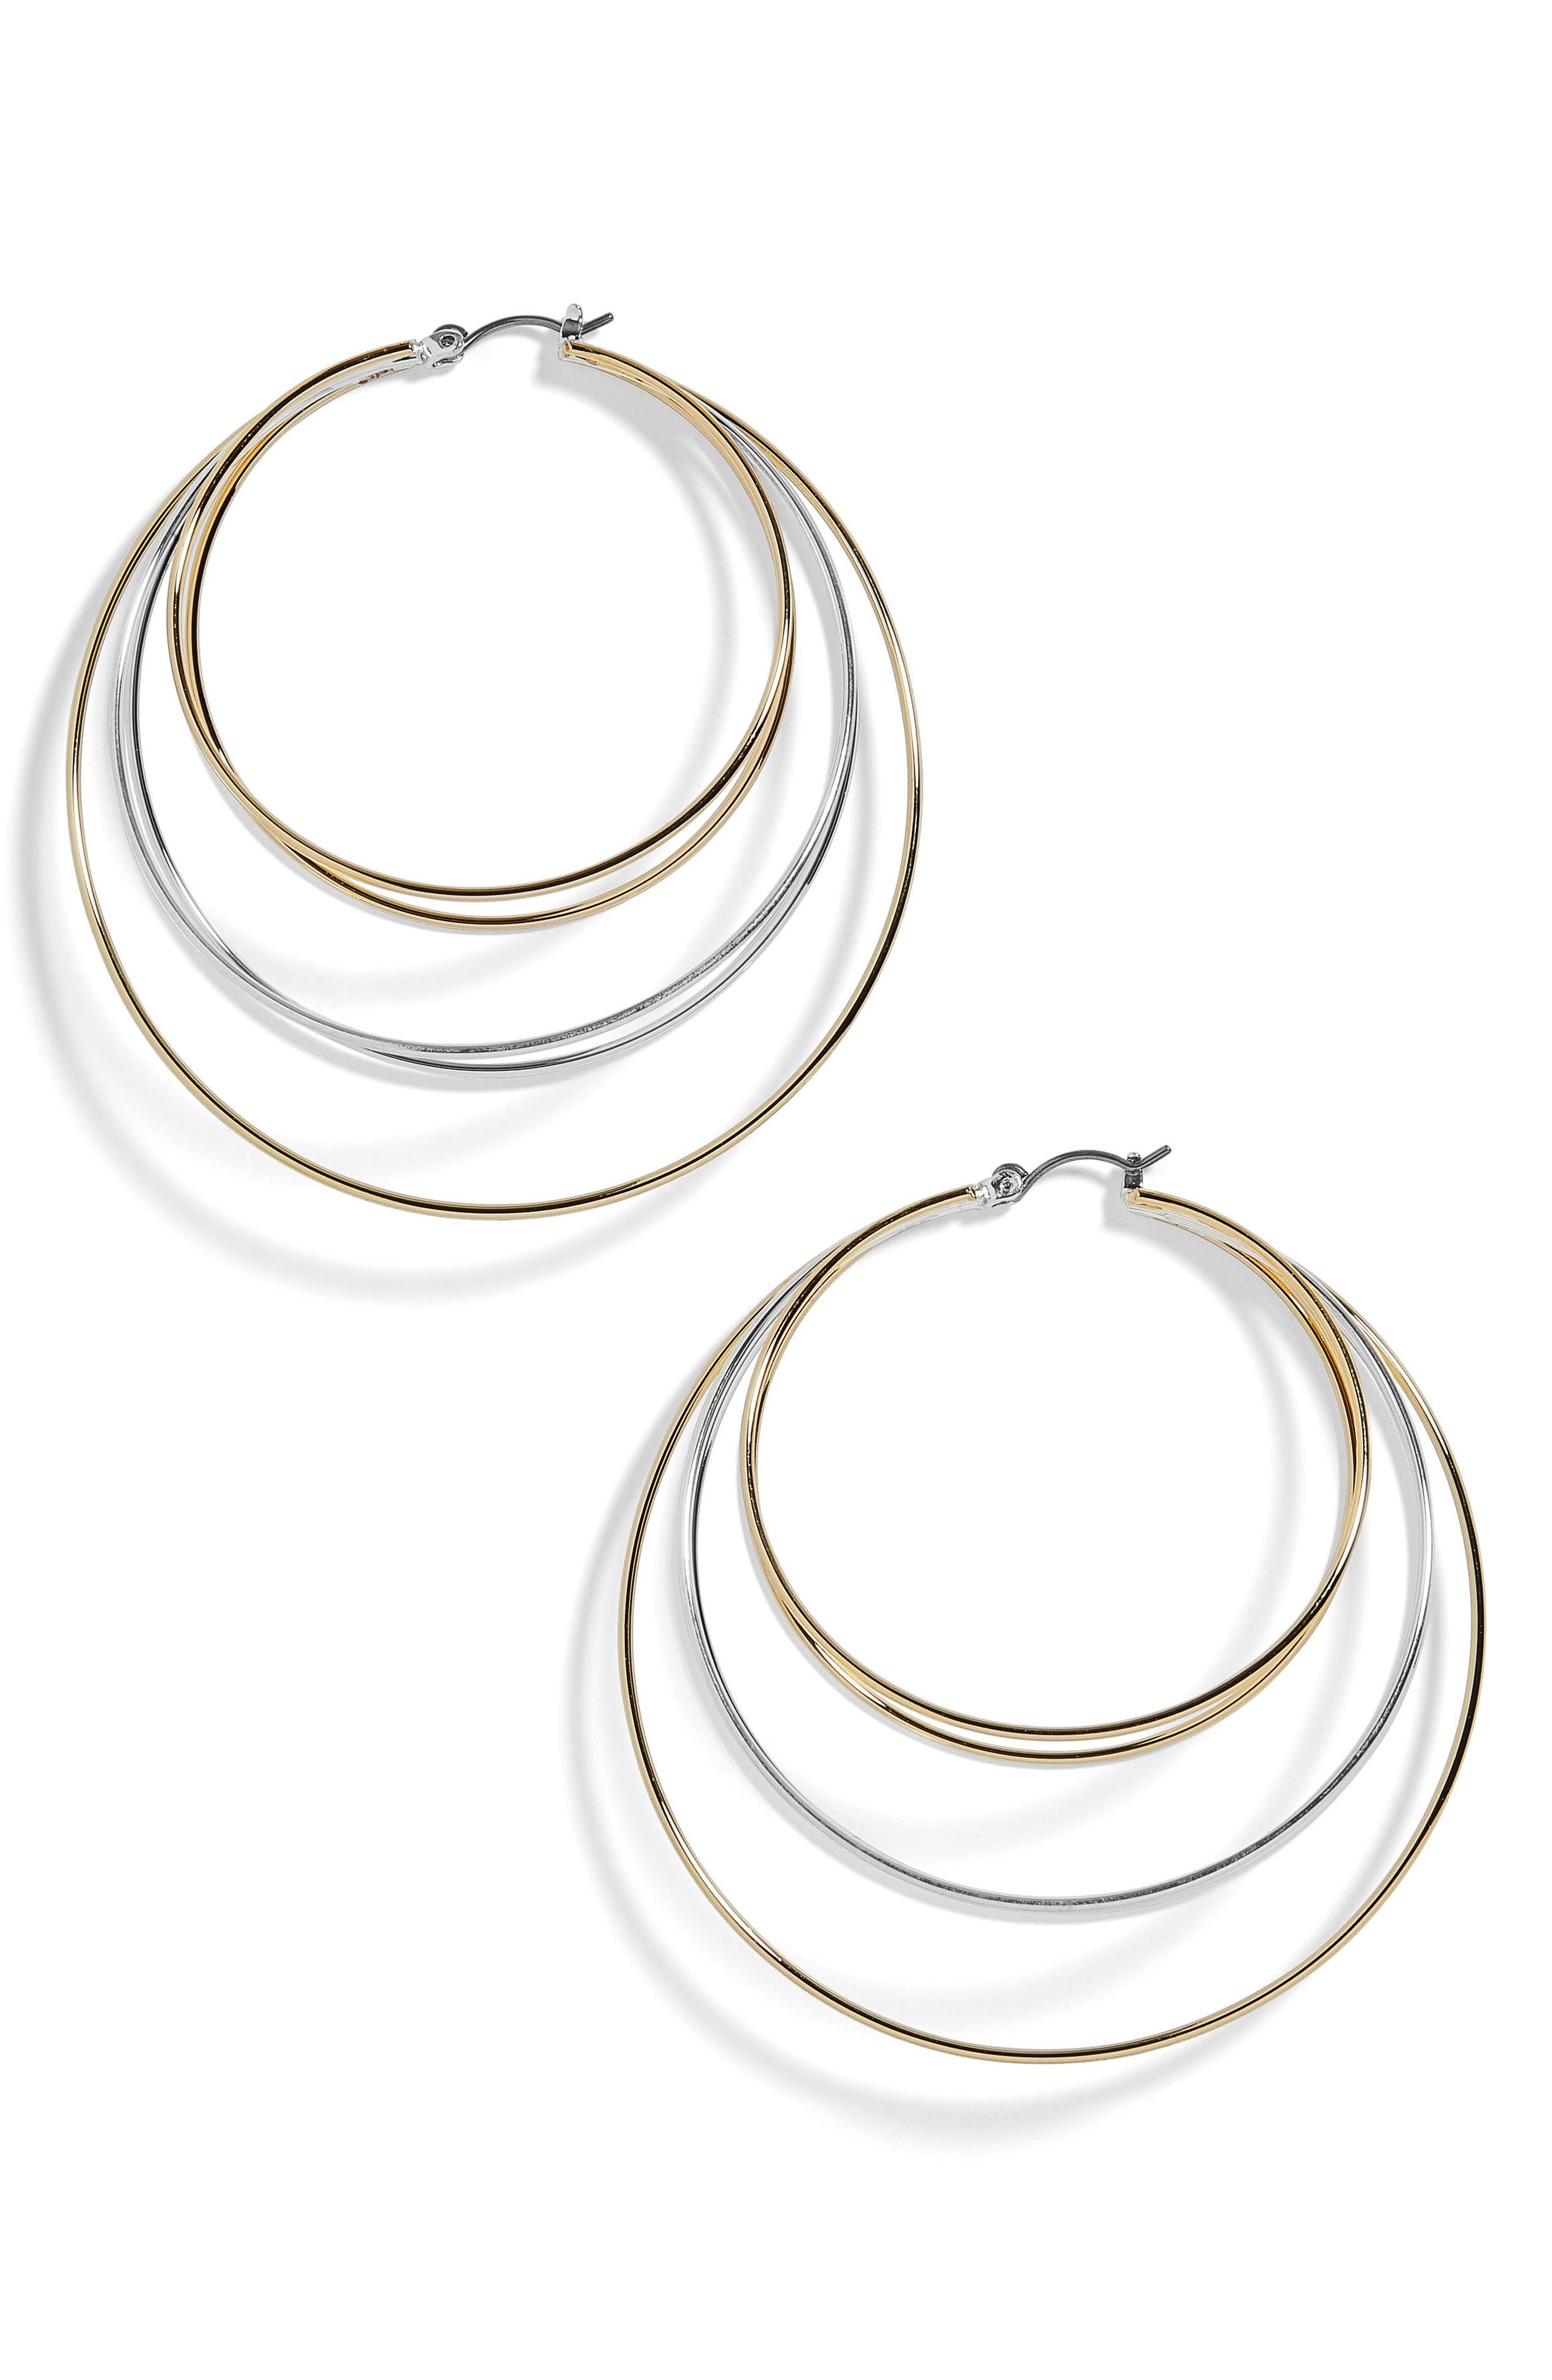 Rielle Mixed Metal Hoop Earrings,                         Main,                         color, Silver/ Gold